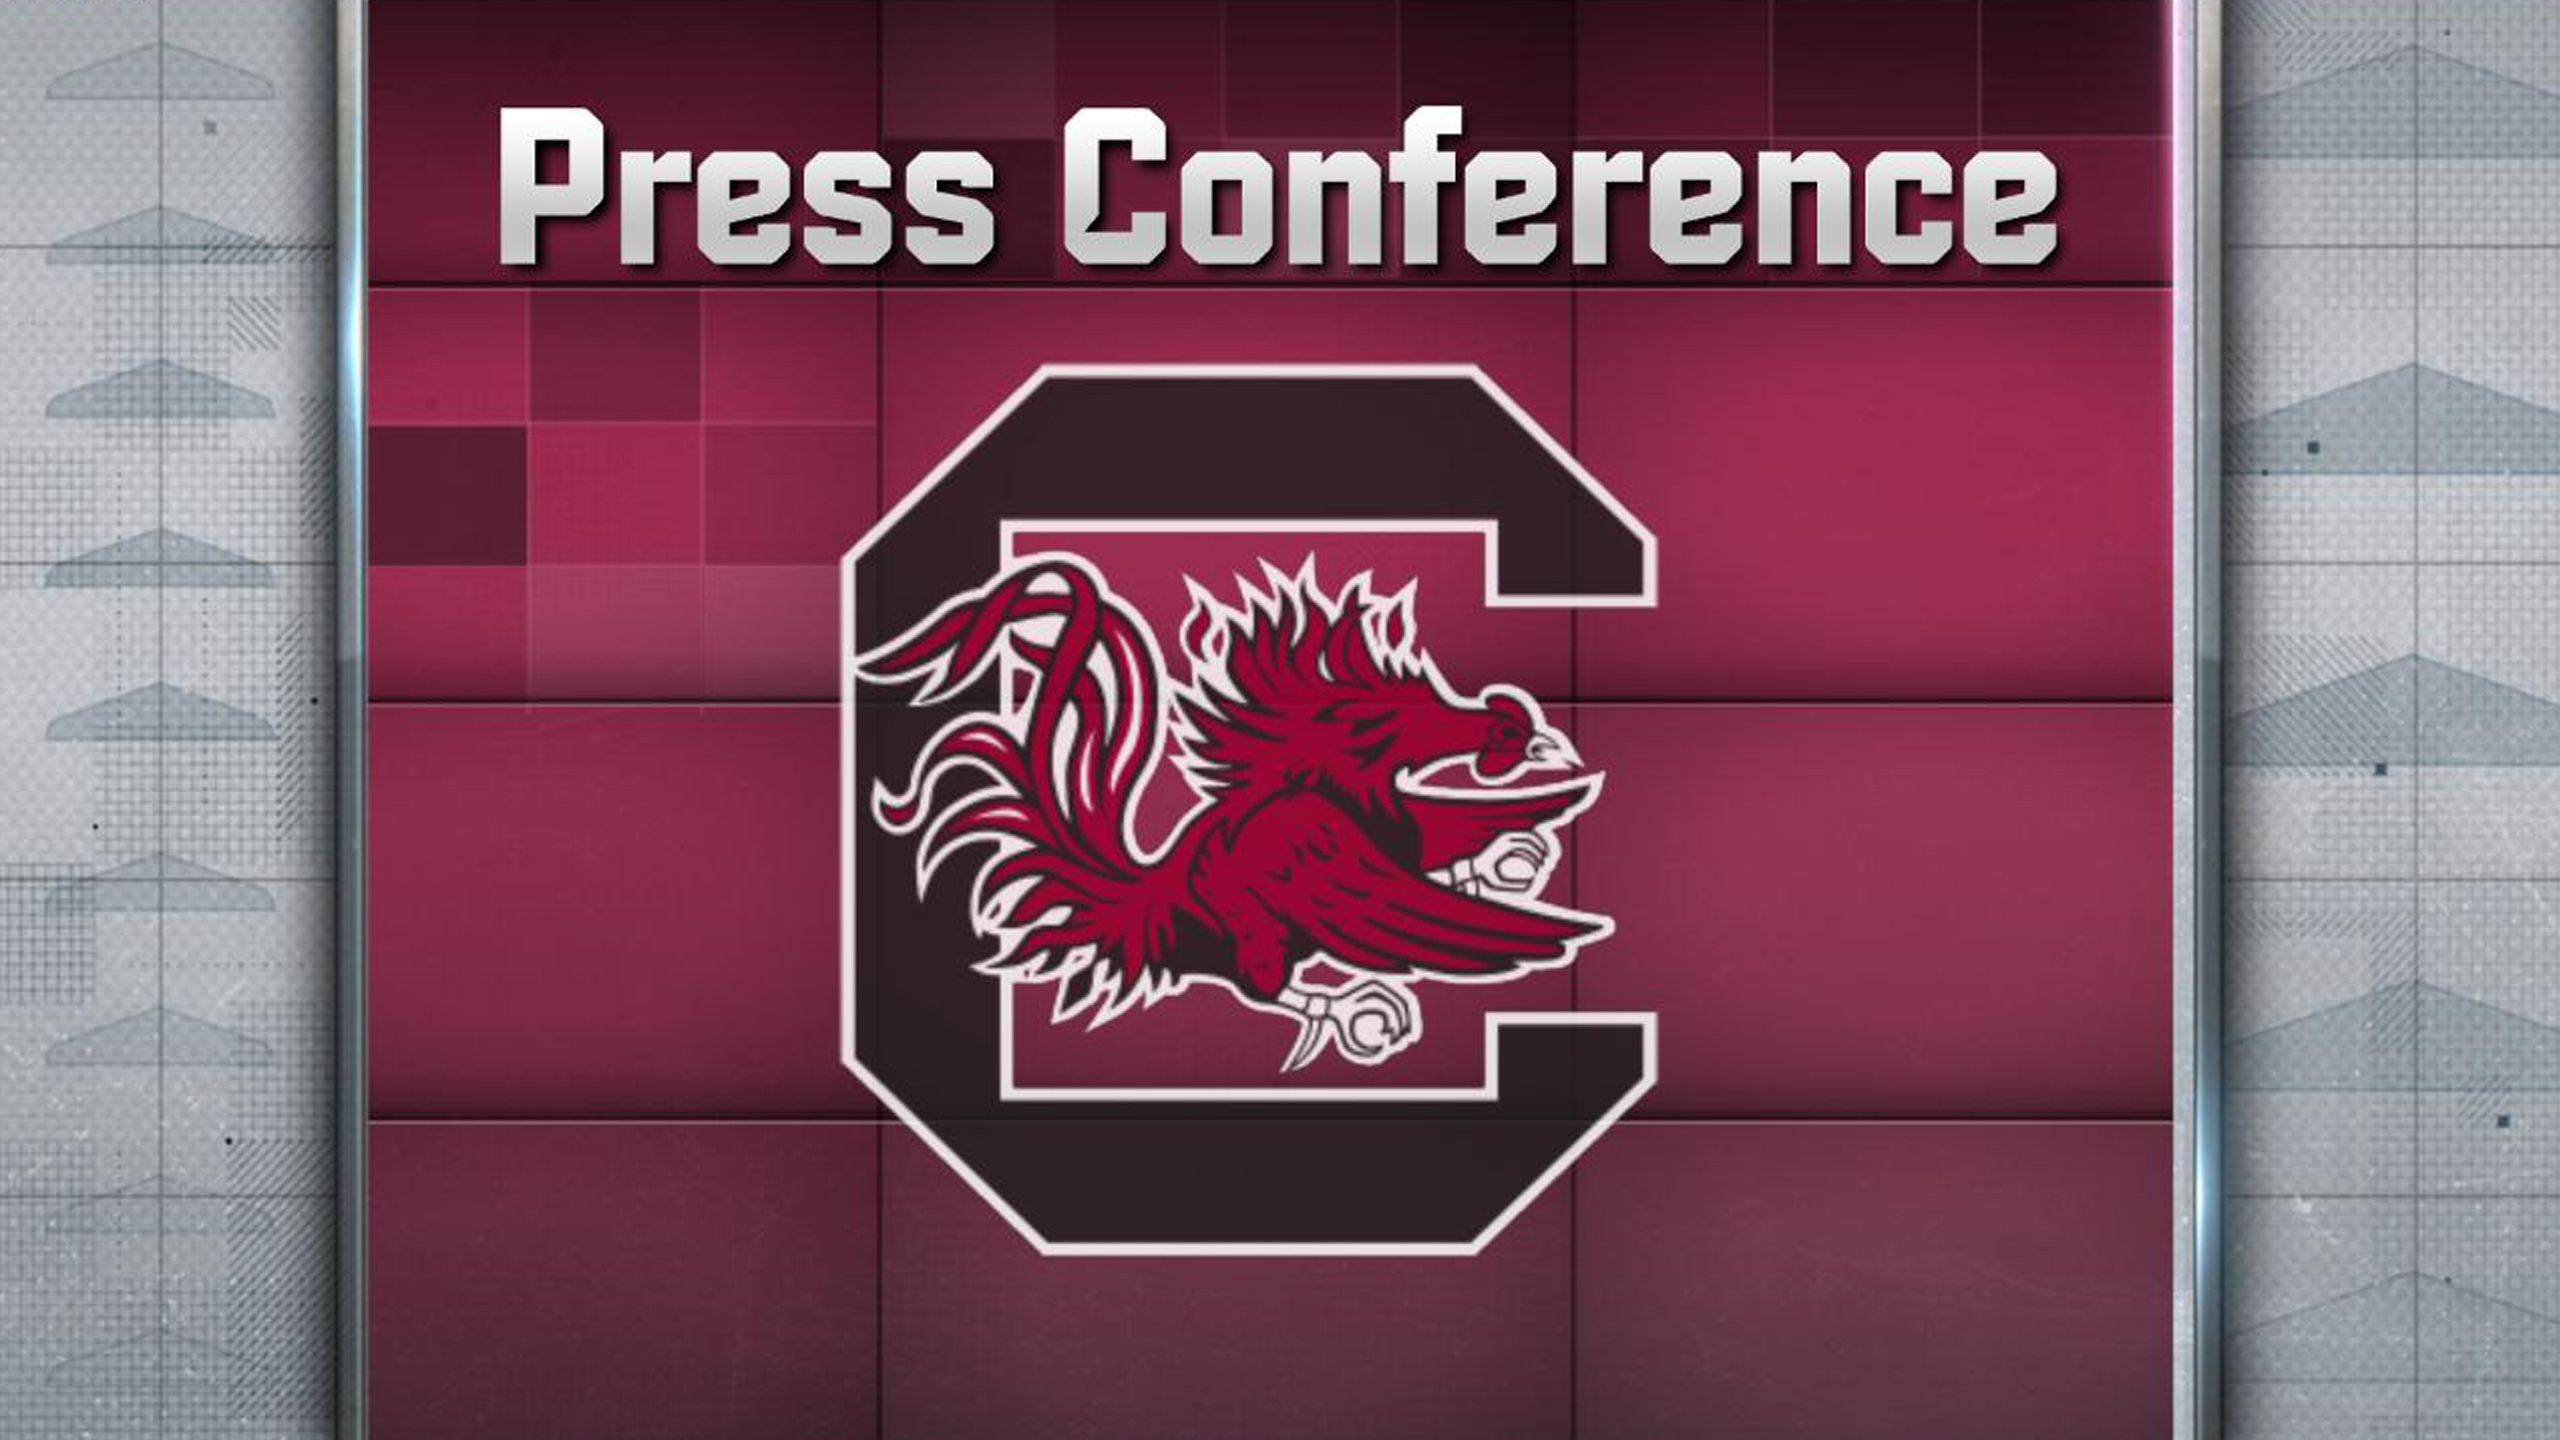 South Carolina Football Press Conference